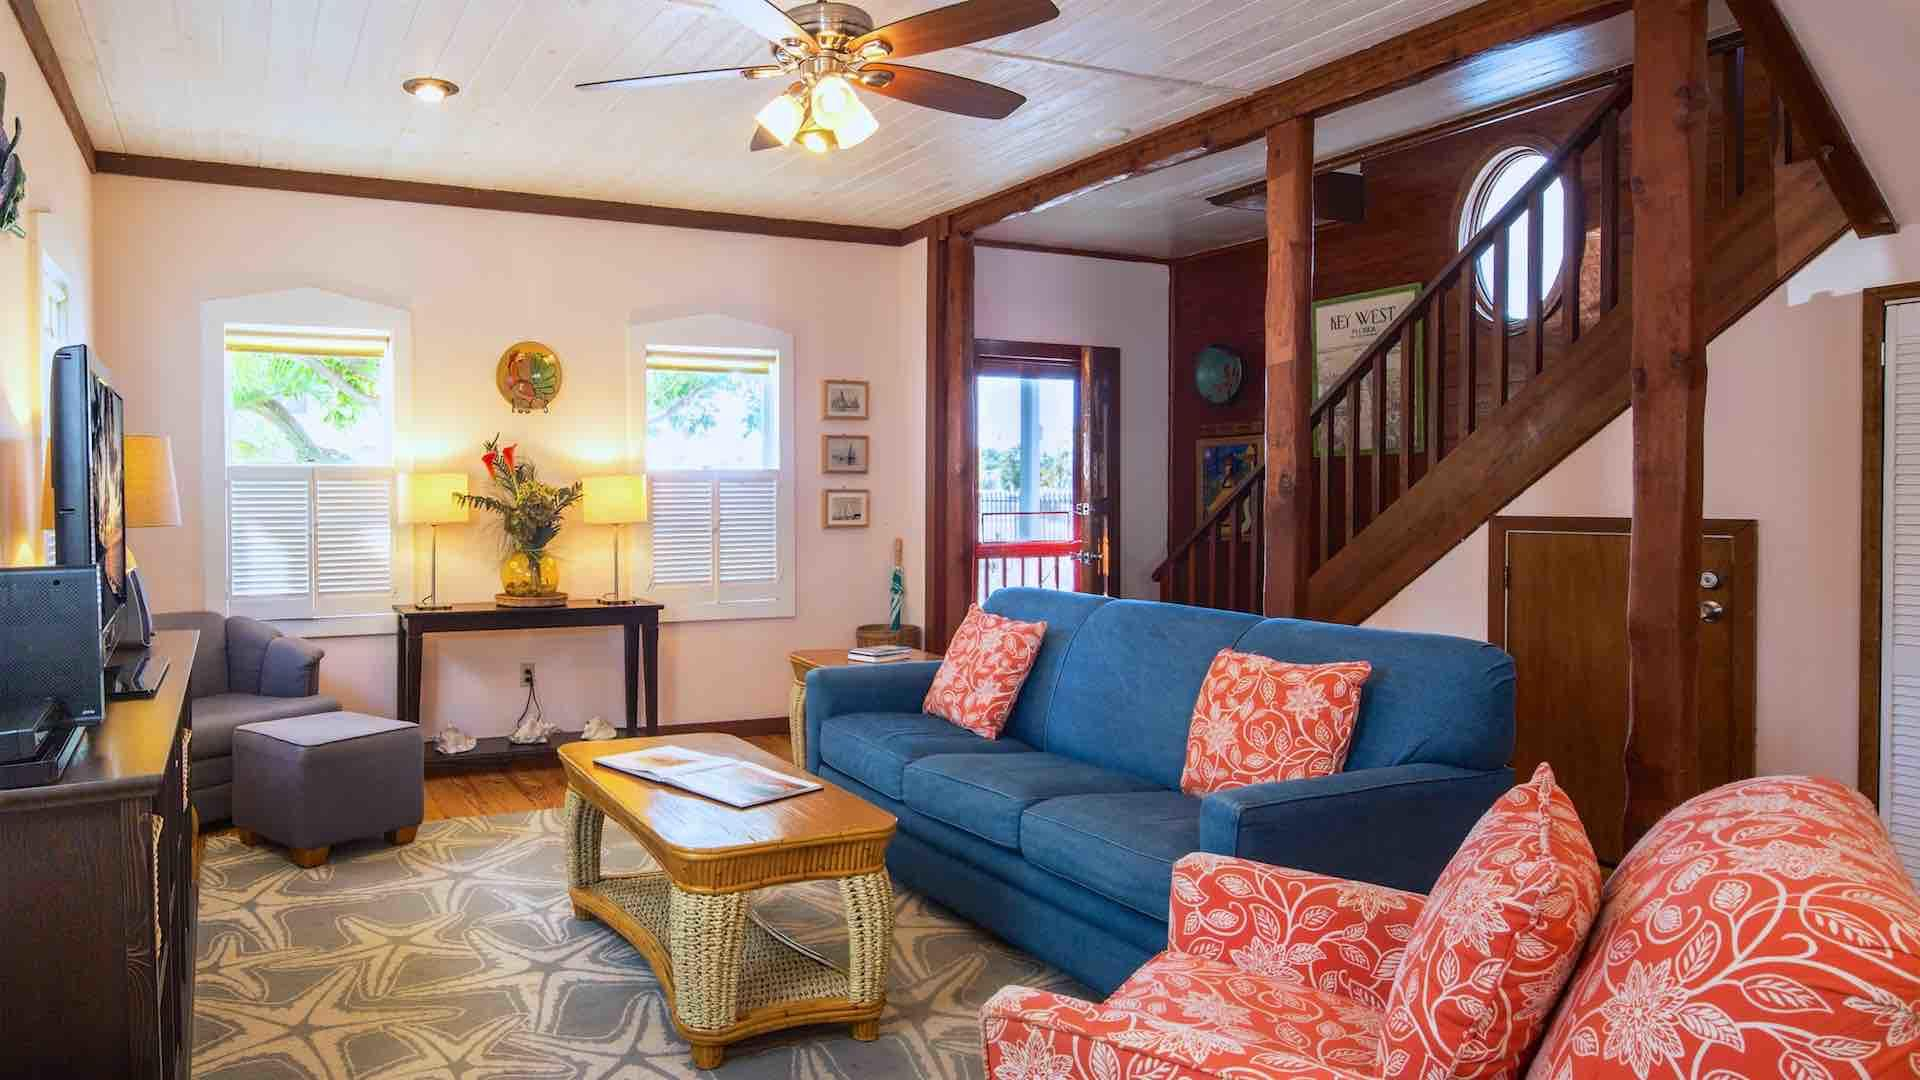 Choose from multiple comfortable seating options in the living room...